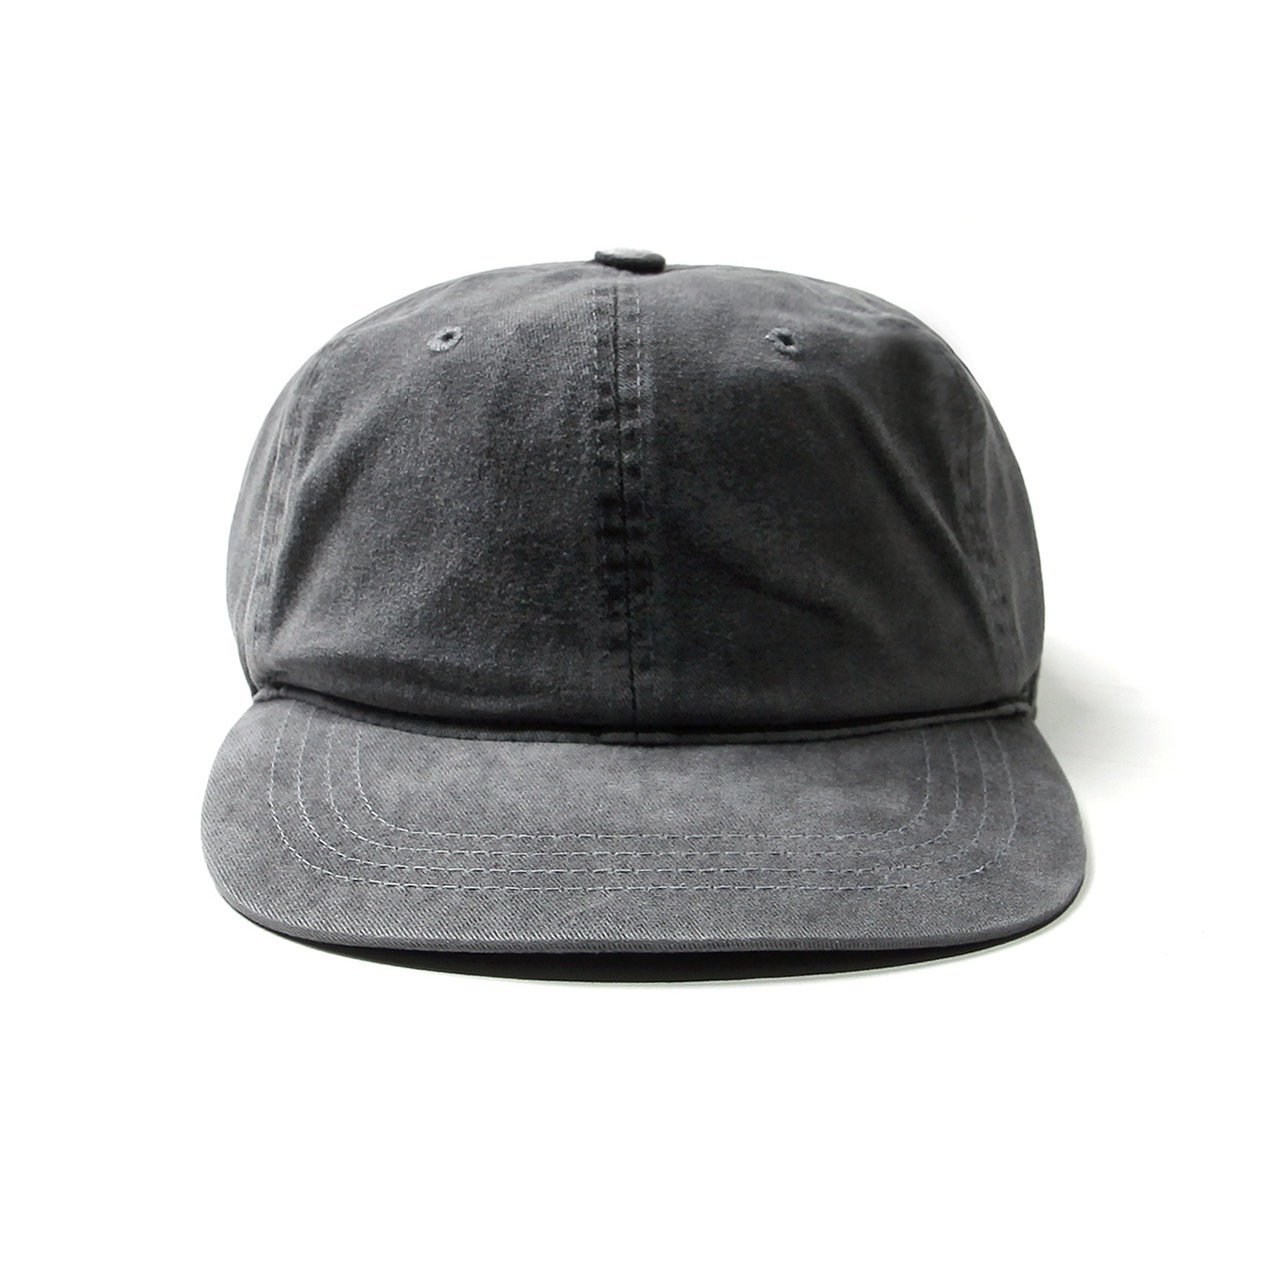 ORIGINAL BALL CAP-CHARCOAL